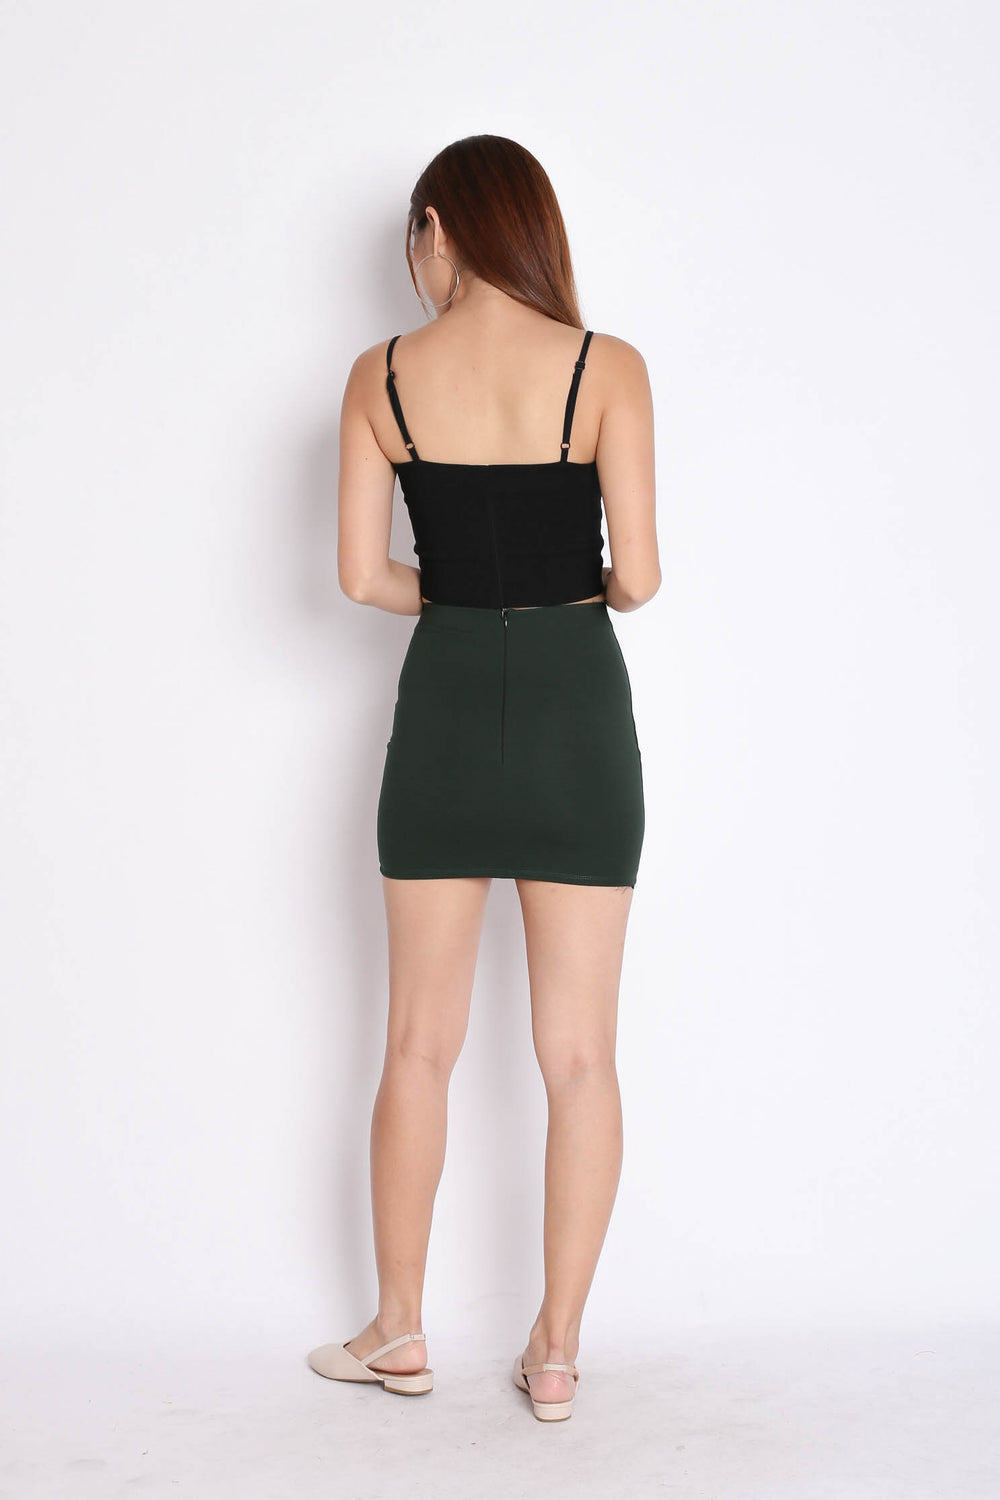 CLASSIC MINI BODYCON SKIRT IN FOREST - TOPAZETTE